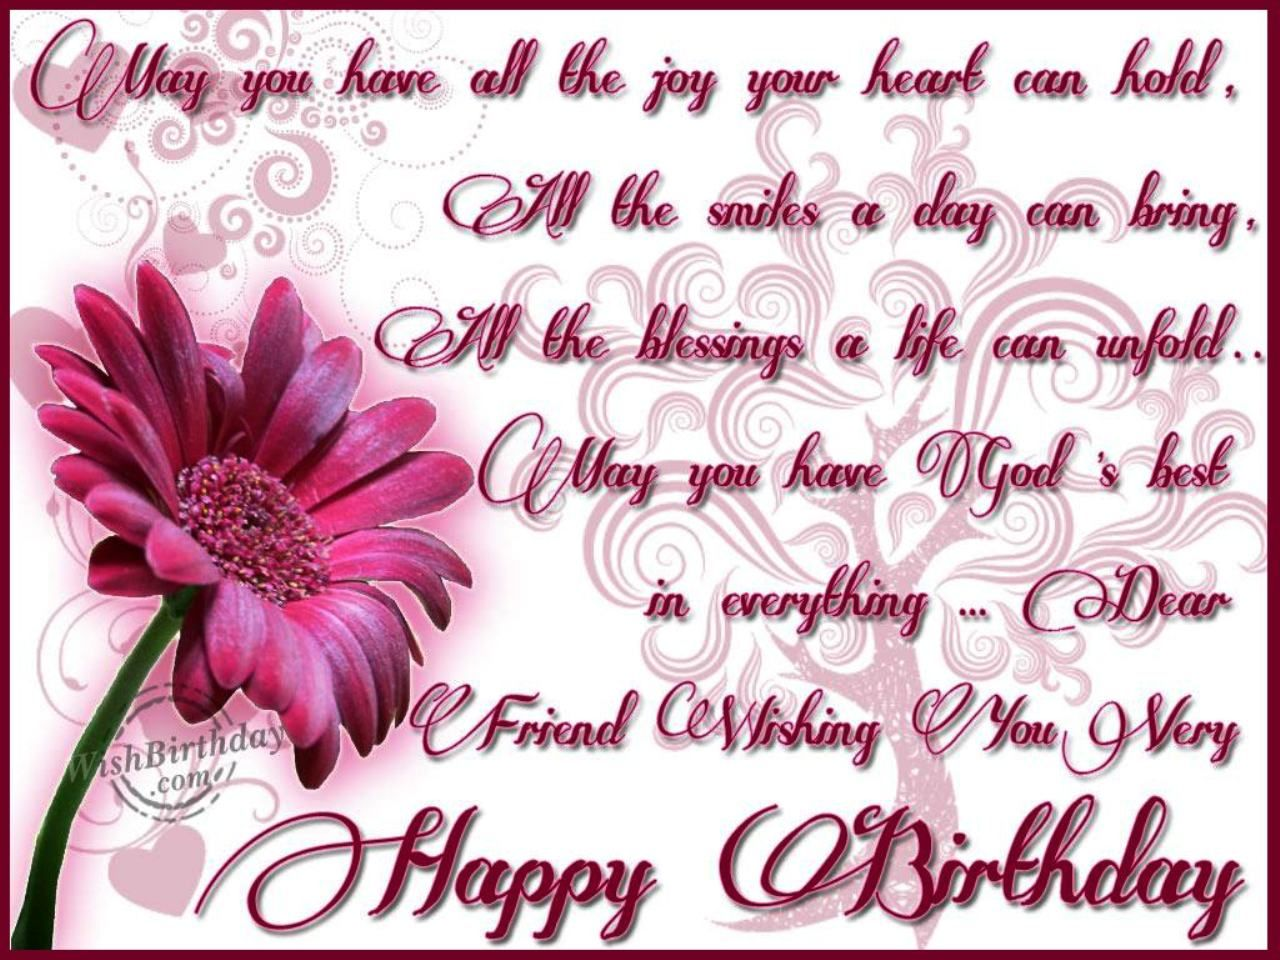 Birthday Wishes For Friend | Wallpapers Catalog | Pinterest ...